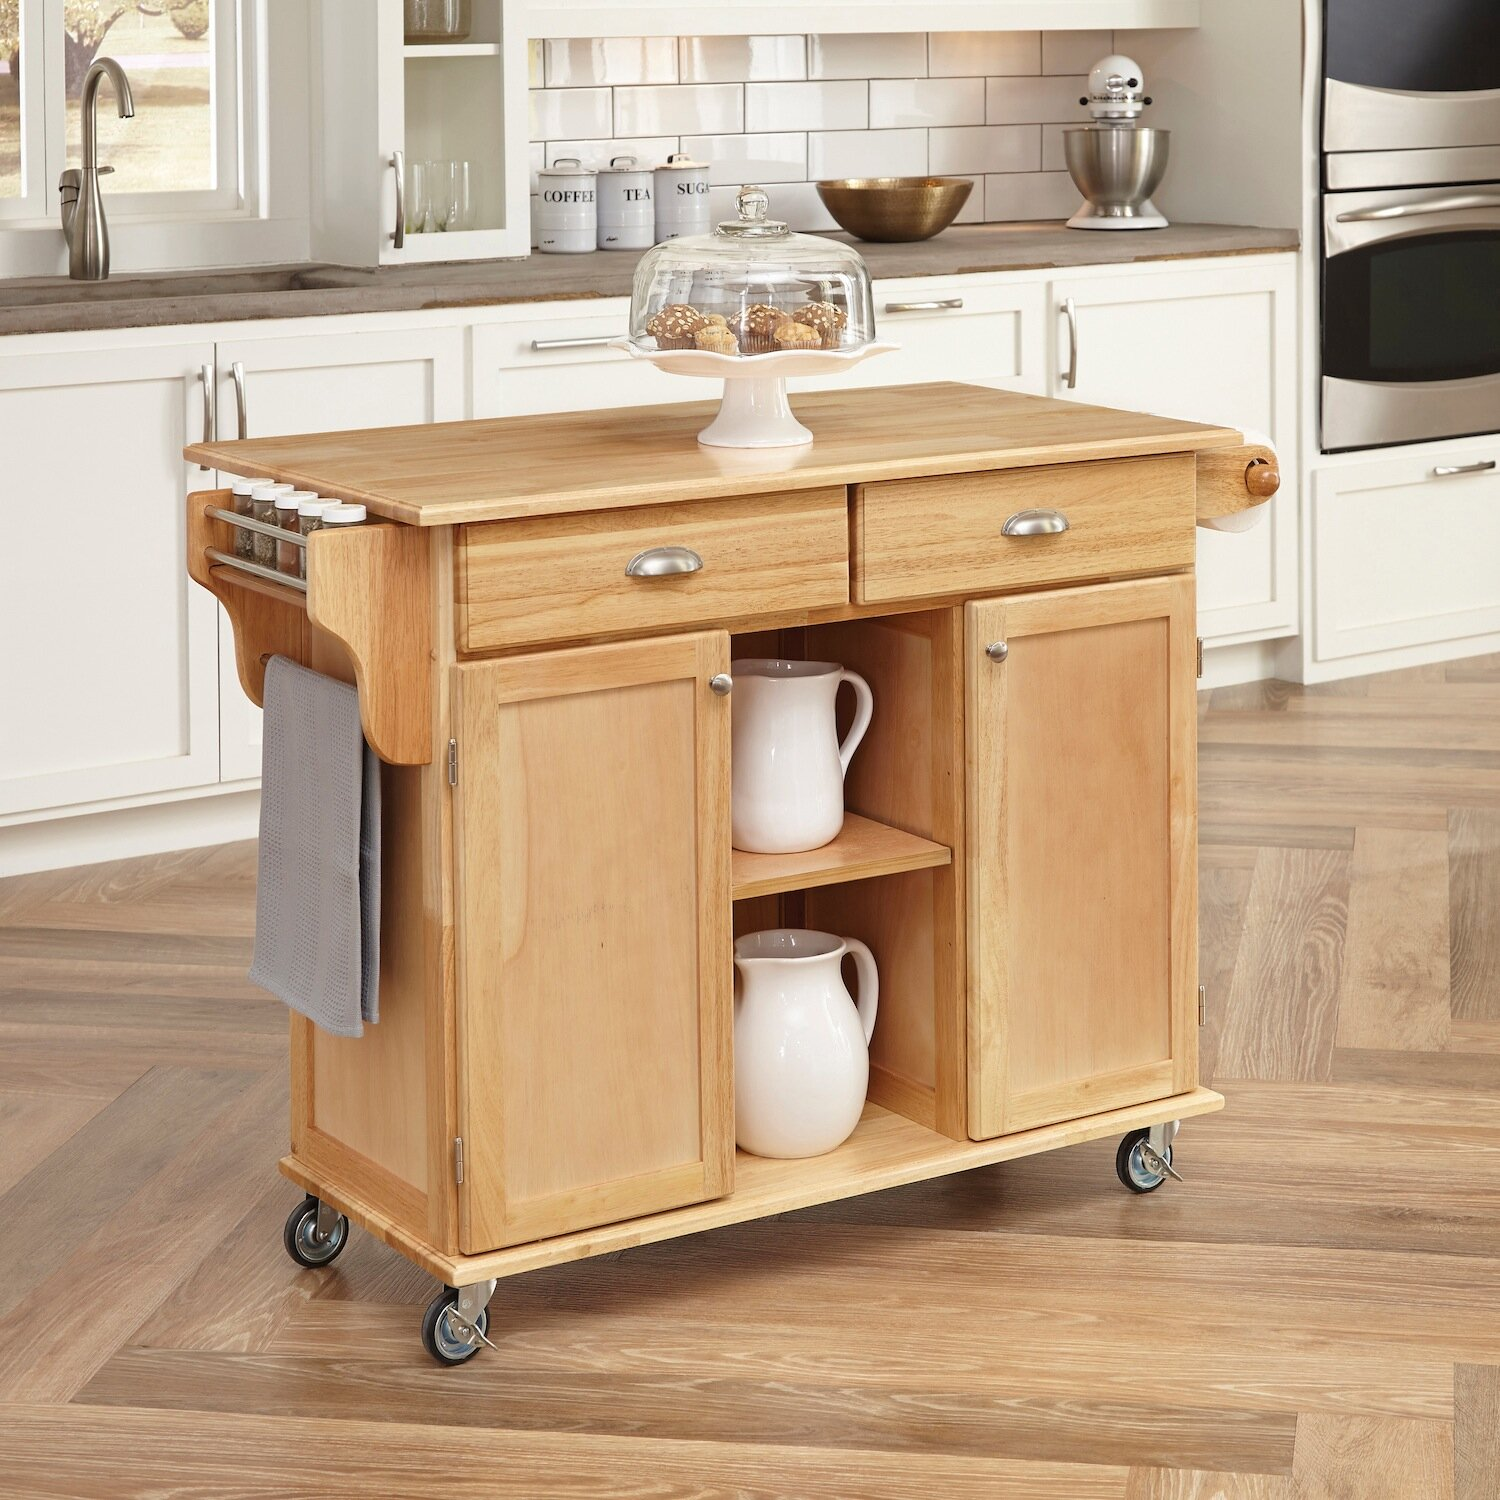 Kitchen Wood Top: August Grove Lili Kitchen Island With Wood Top & Reviews